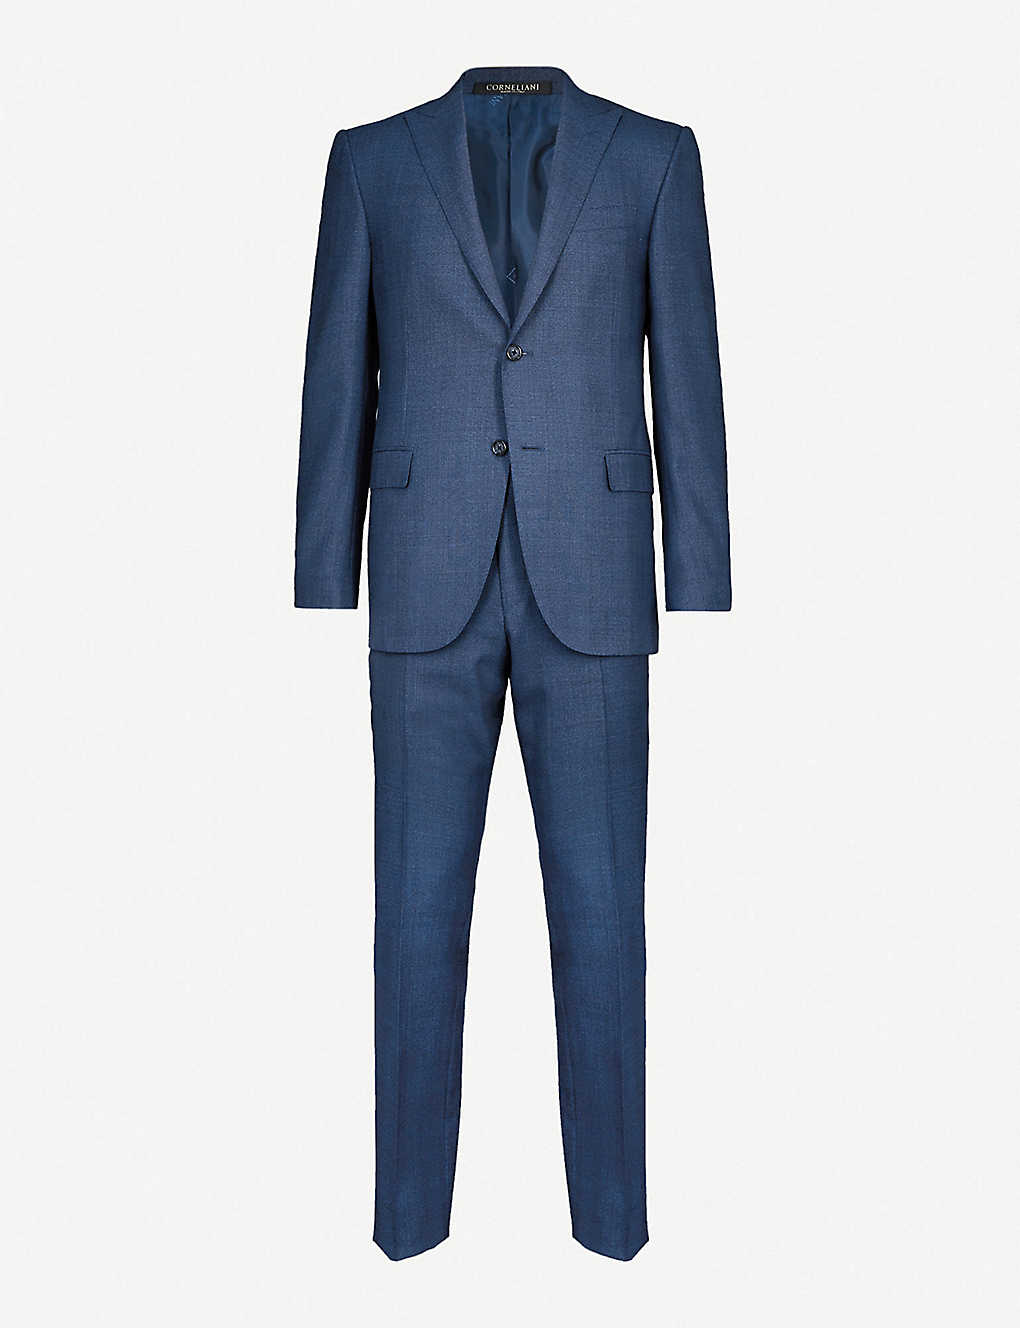 ead9b2876d184f CORNELIANI - Prince of wales check academy-fit wool suit | Selfridges.com